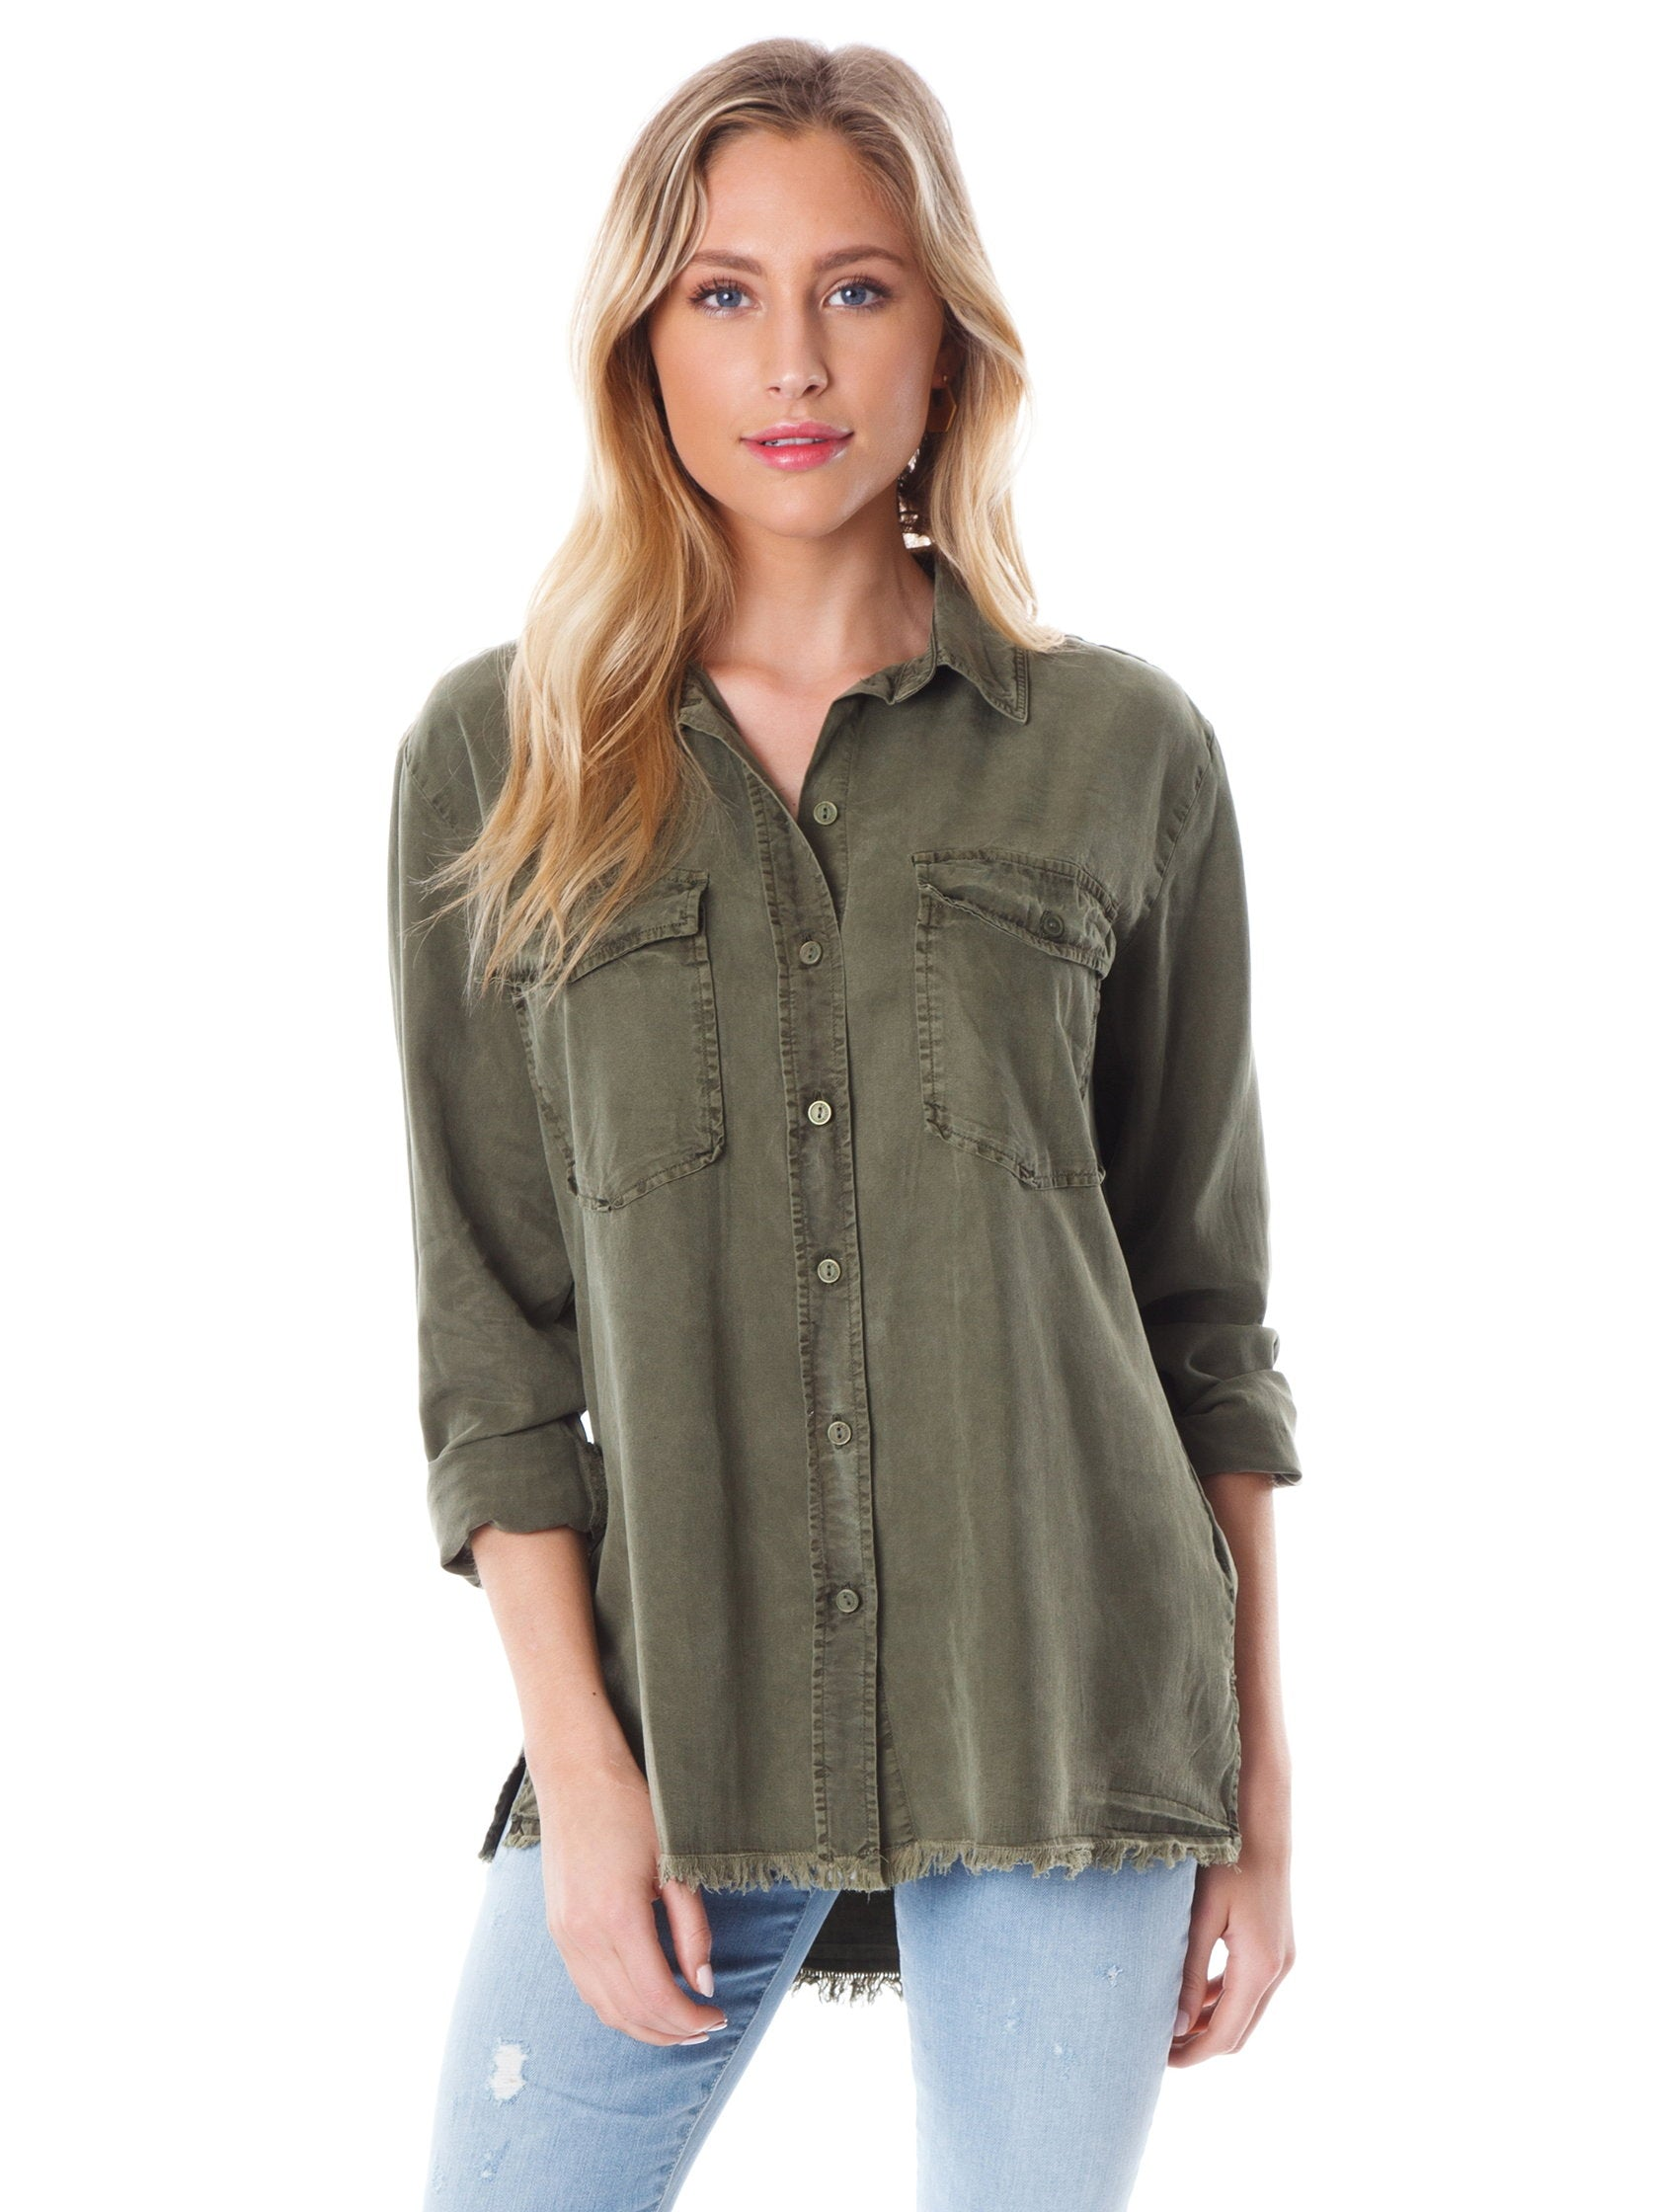 Women outfit in a top rental from SANCTUARY called Gibson Button Down Shirt